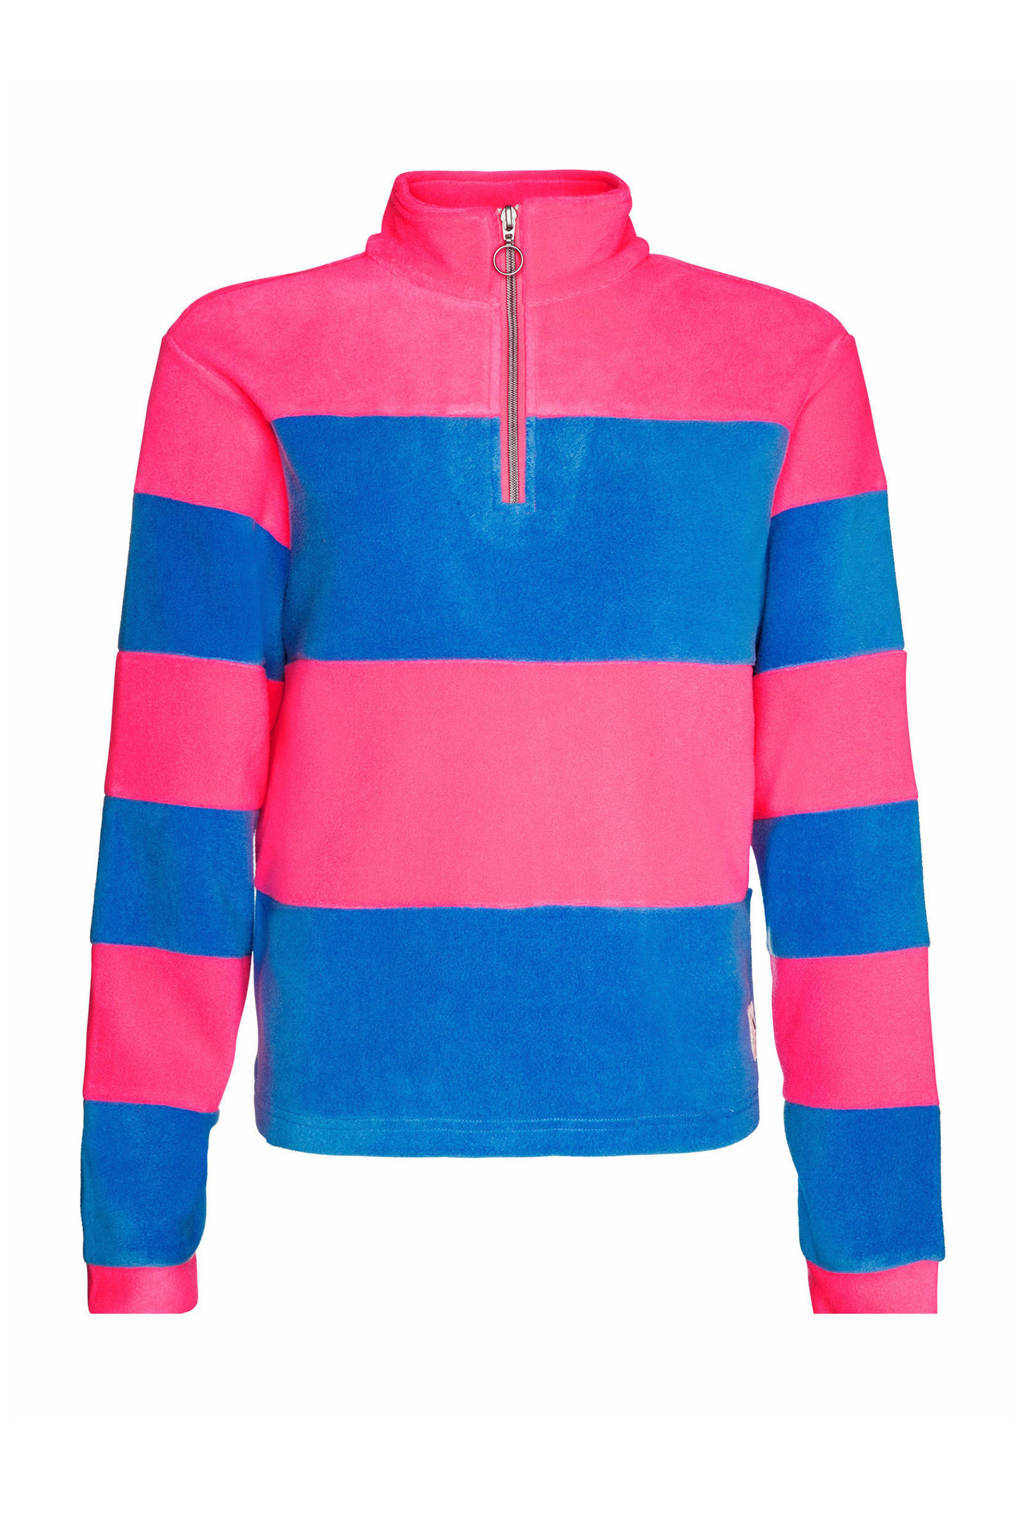 Protest Skipully Cassie roze/blauw, So Rosy